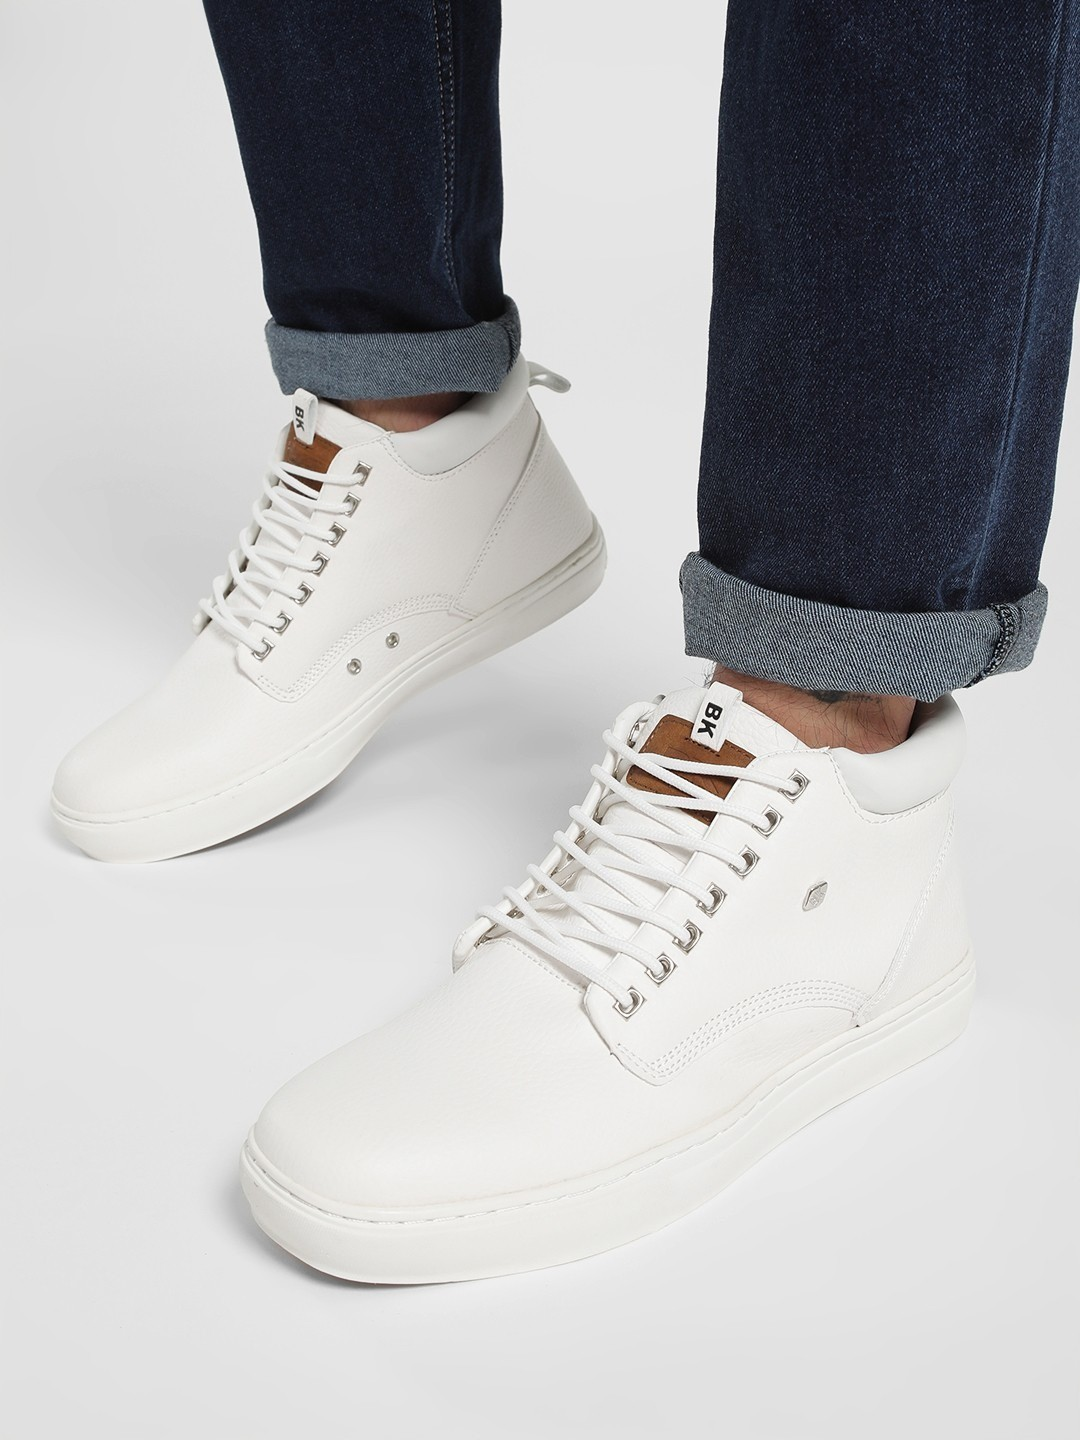 BRITISH KNIGHTS White Mid Top Collared Casual Shoes 1